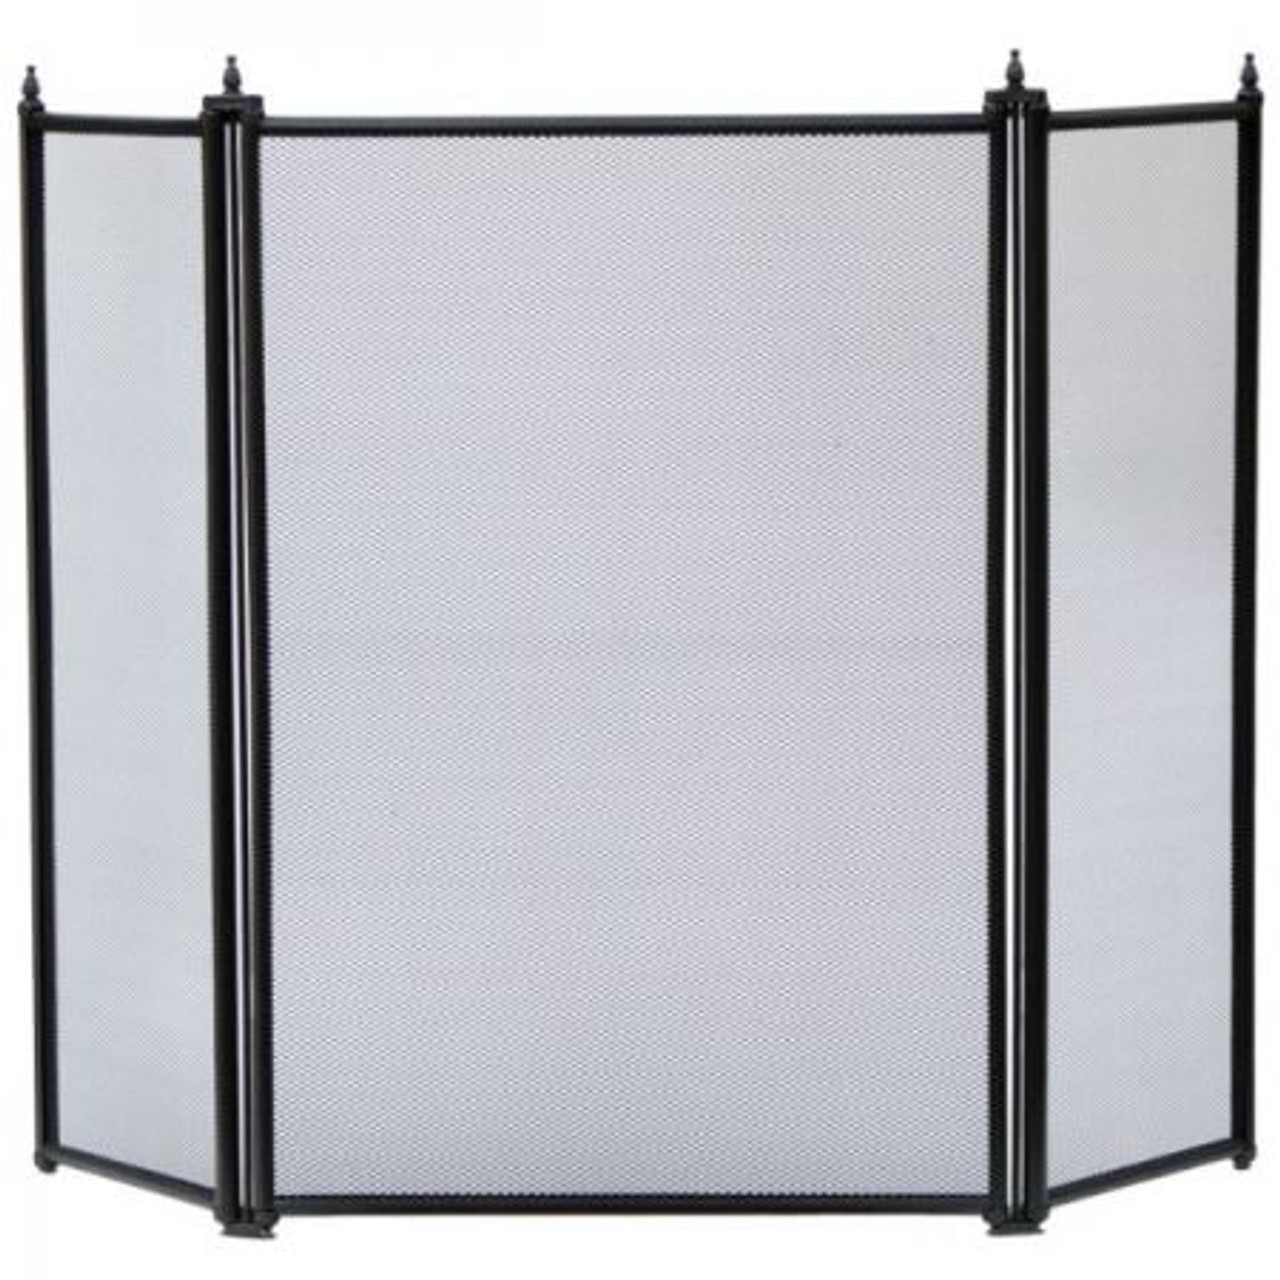 Black - Manor Regency 3 Fold Folding Fireguard